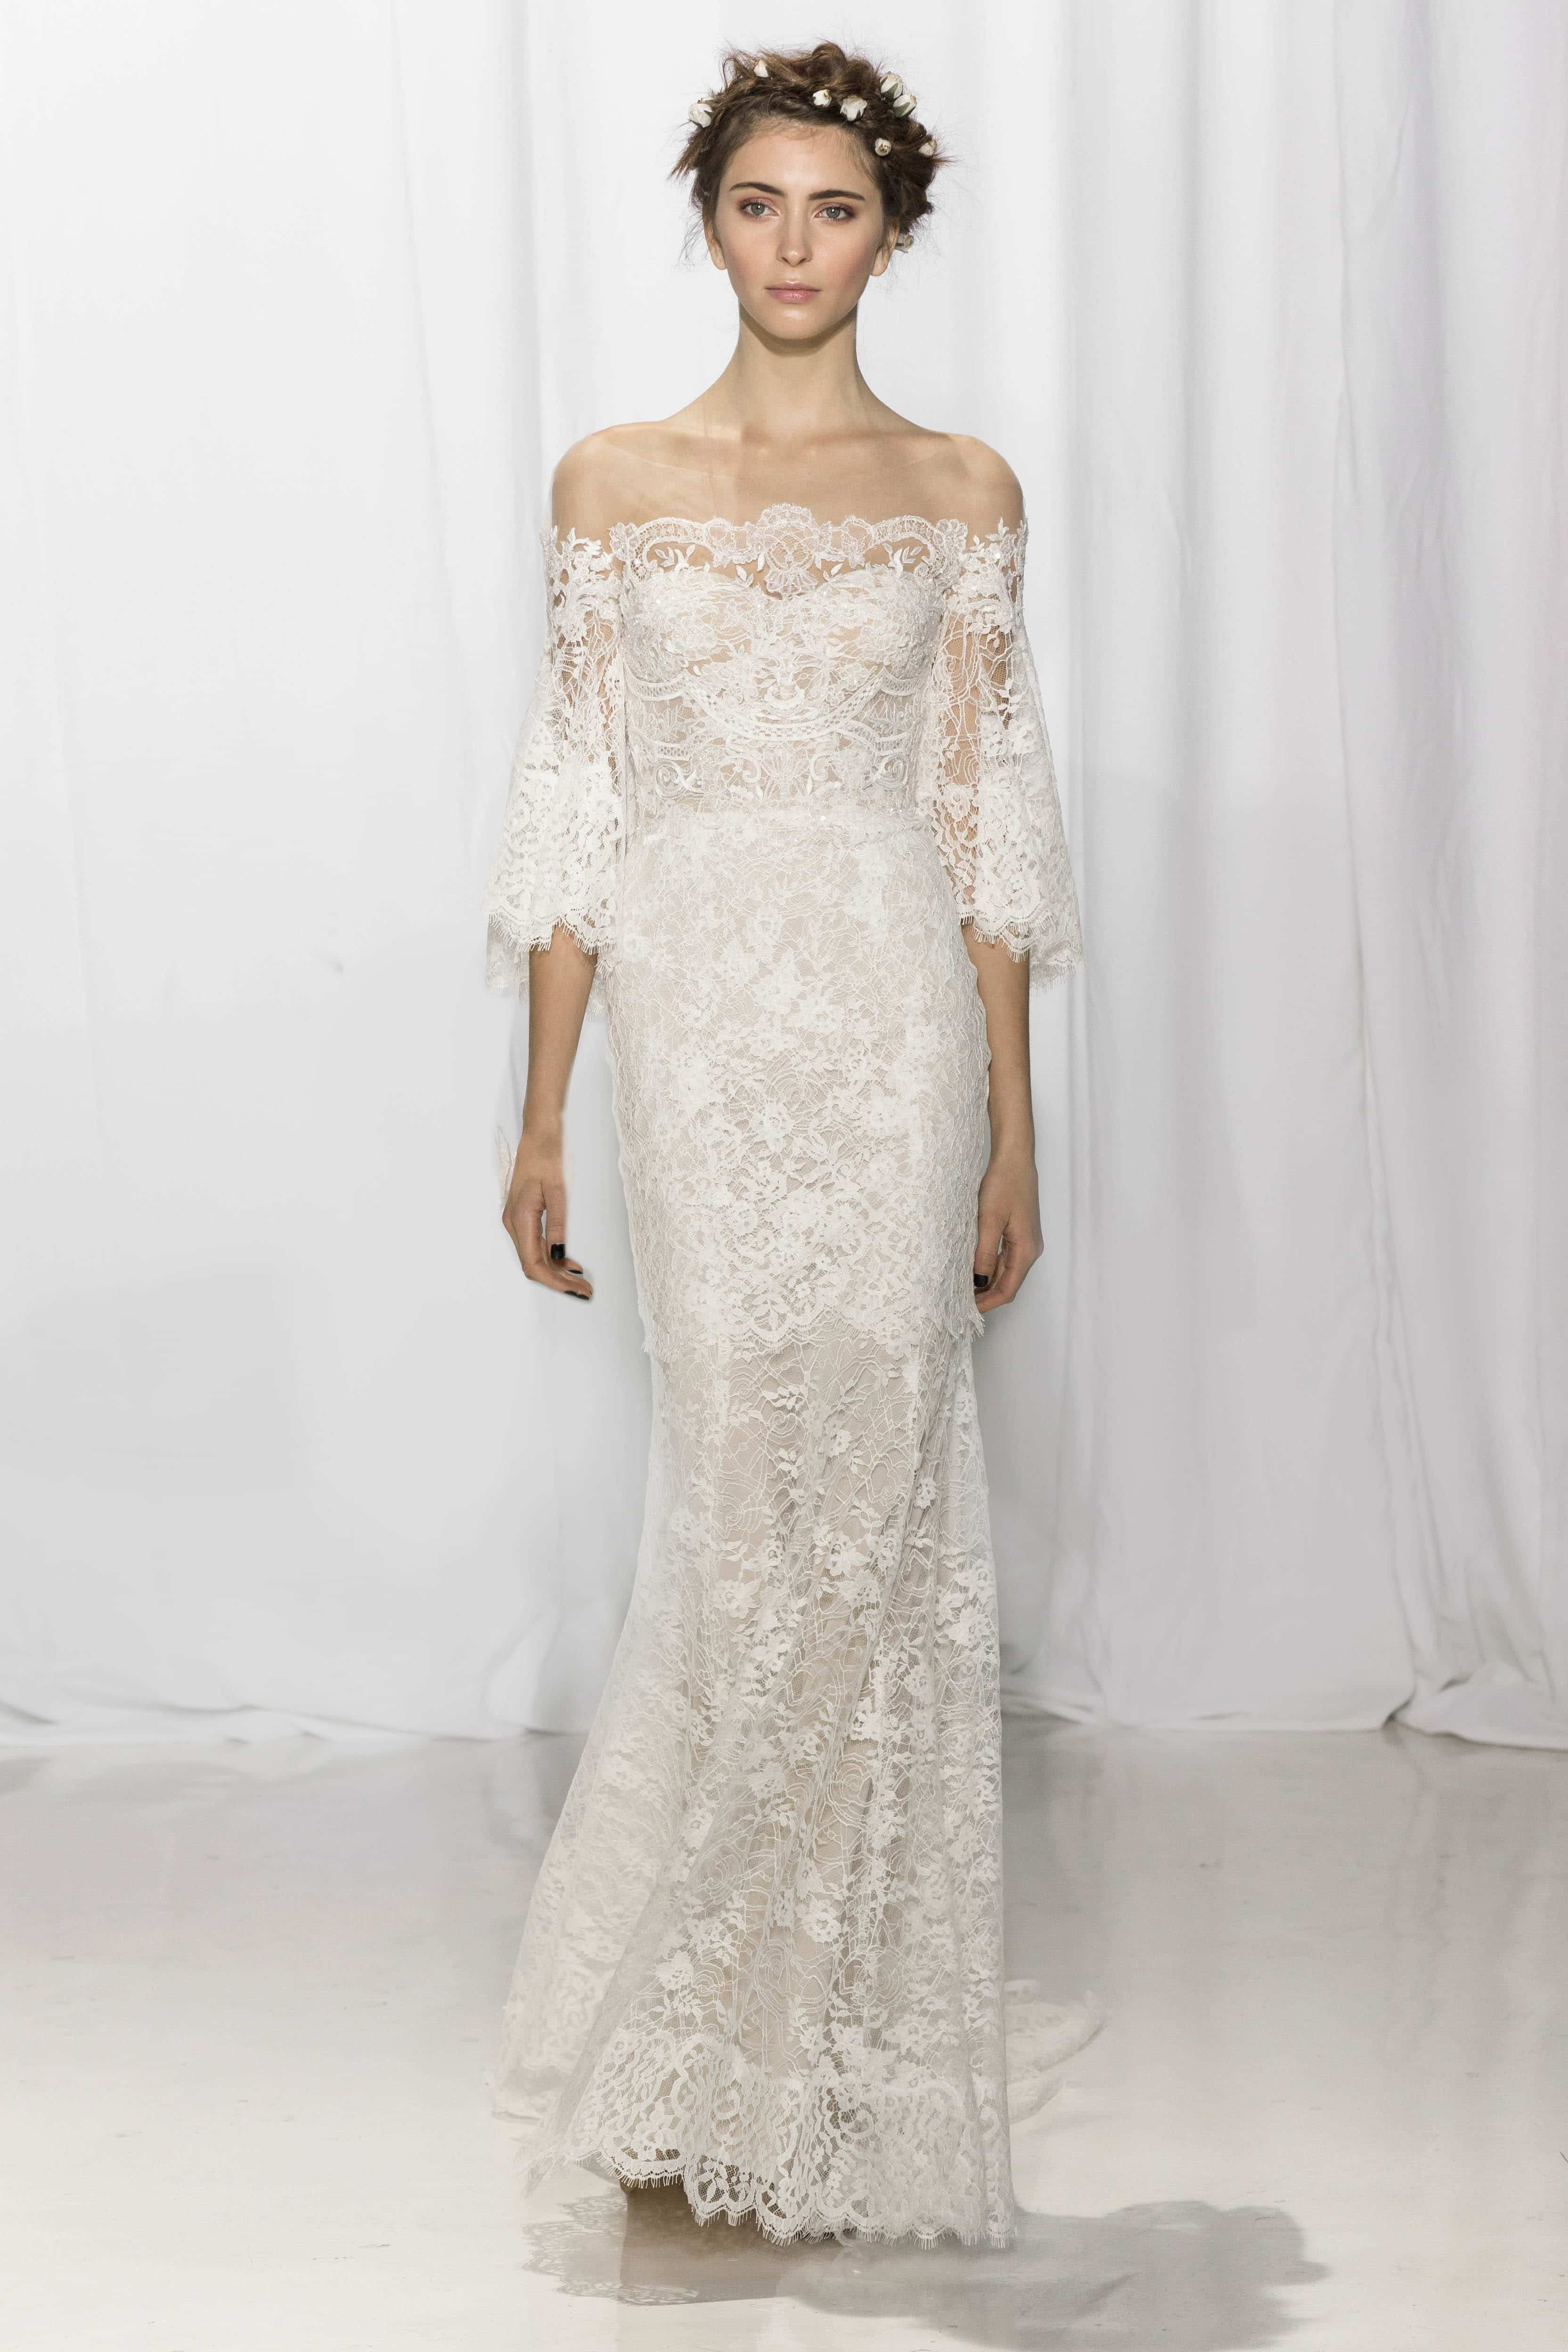 Reem Acra Fall 2017 Collection Rustic Wedding Chic